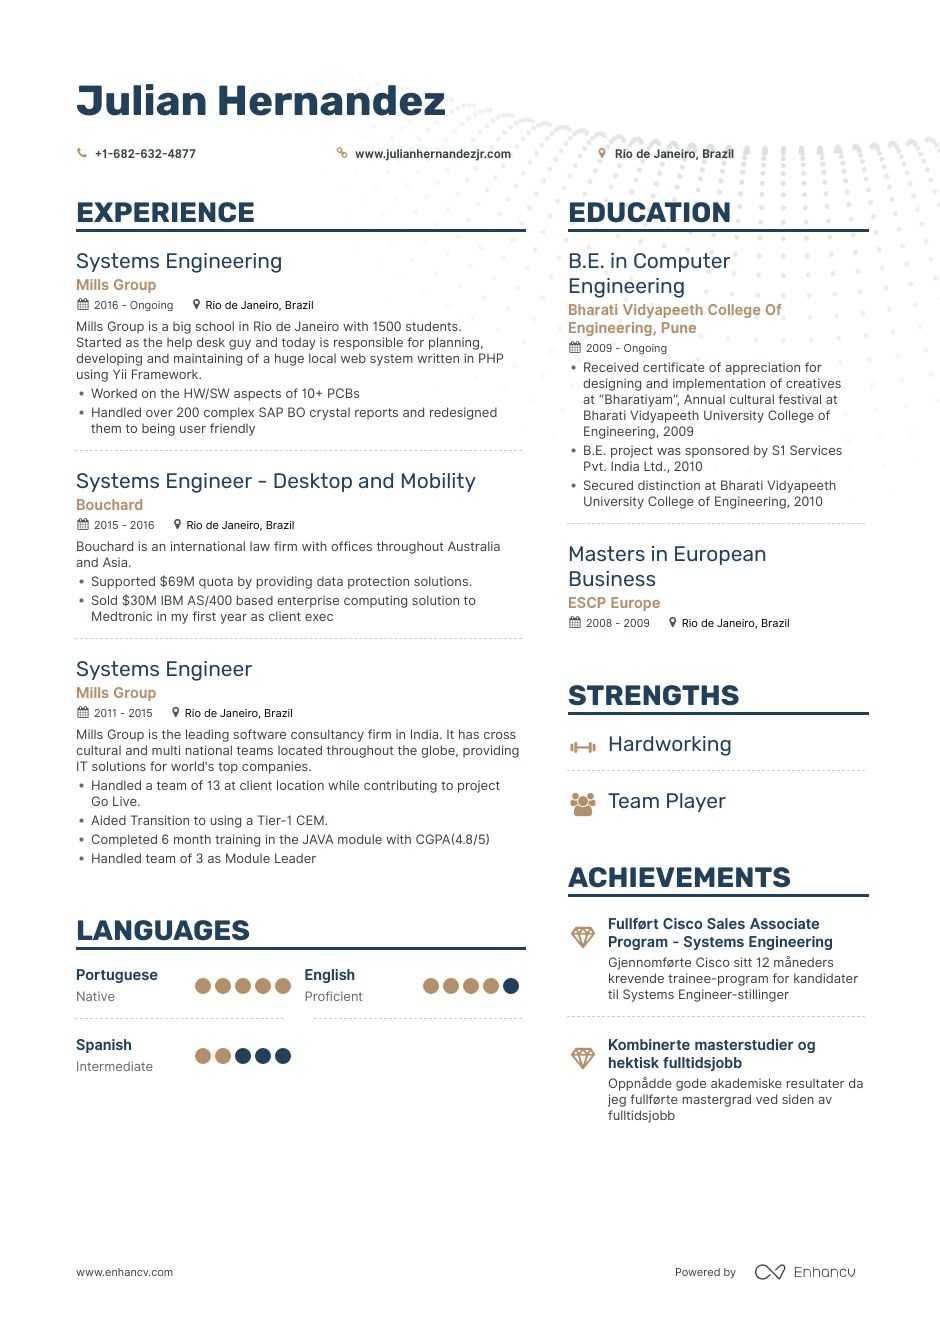 systems engineer resume examples pro tips featured enhancv entry level general objective Resume Entry Level Systems Engineer Resume